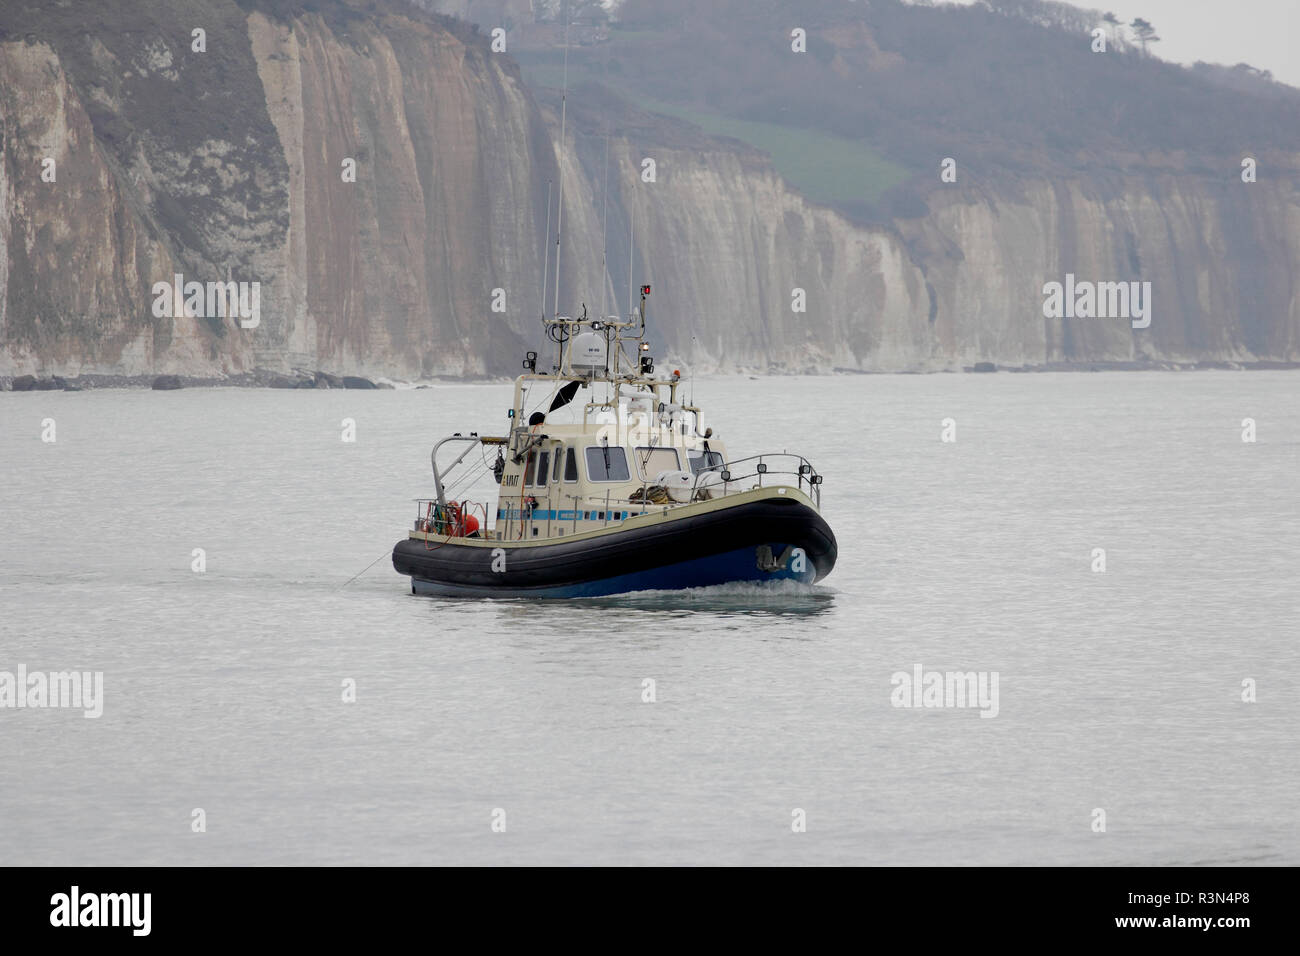 Vessel specialized in high resolution hydrographic mapping in action at Pourville-sur-Mer, Normandy, France - Stock Image